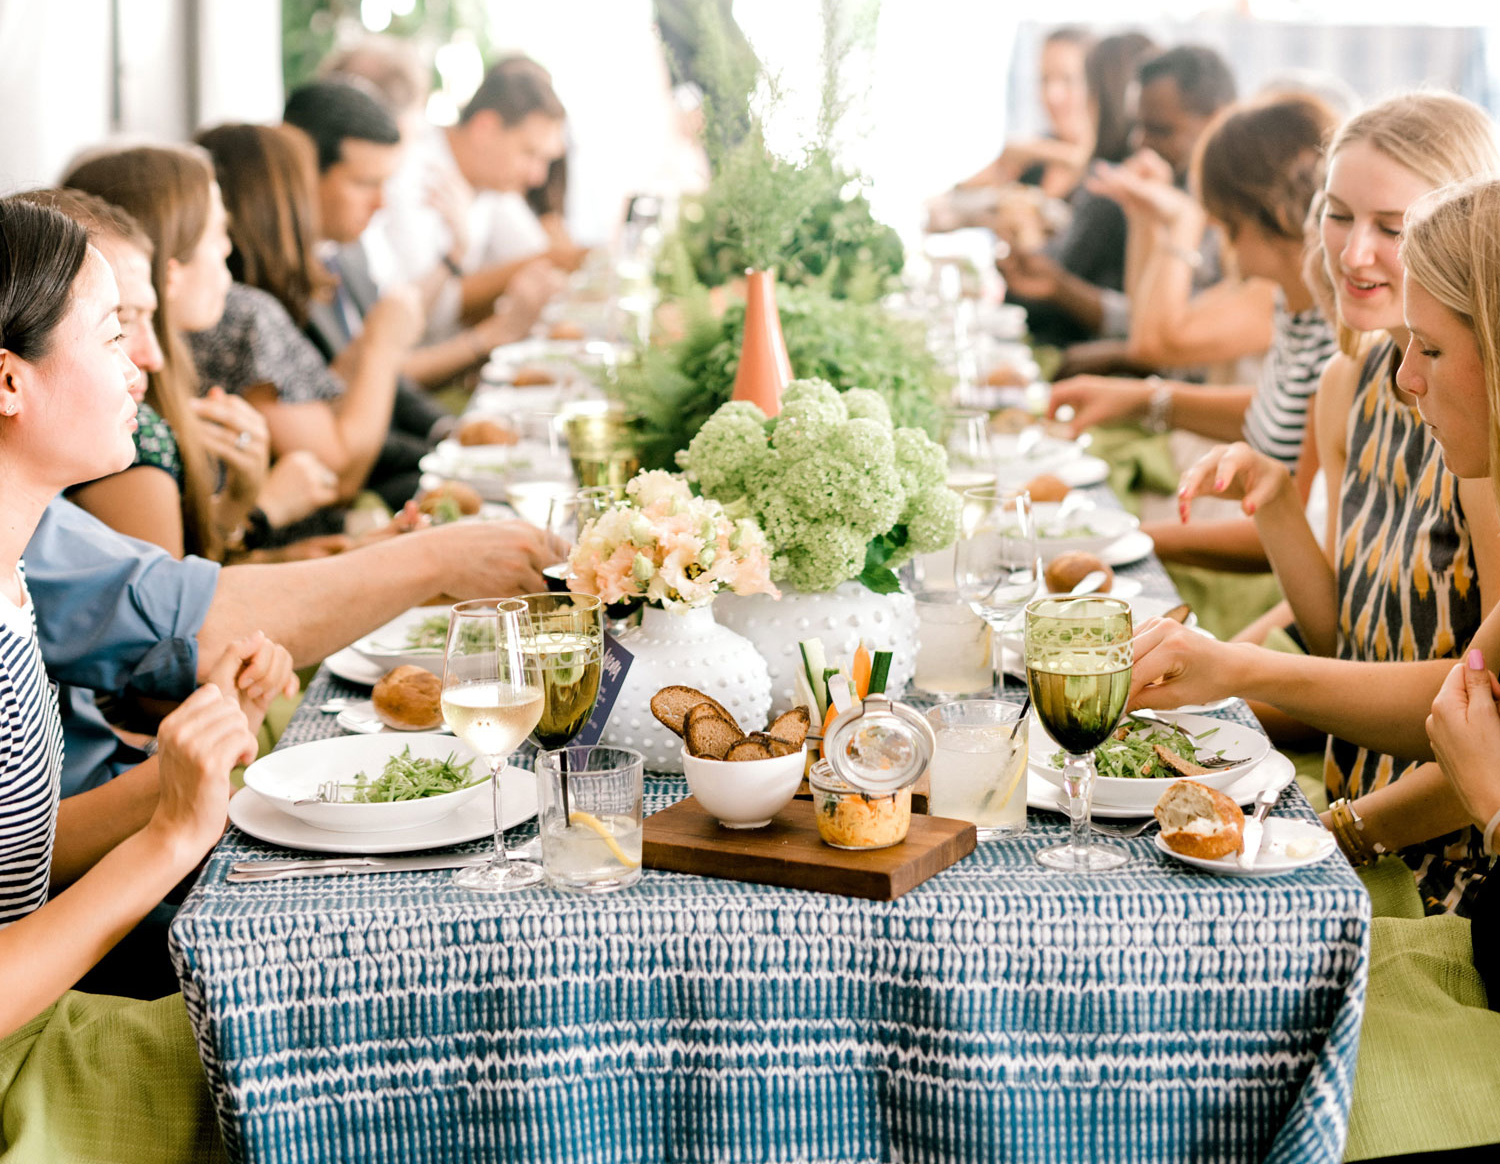 pros and cons to hosting an engagement party